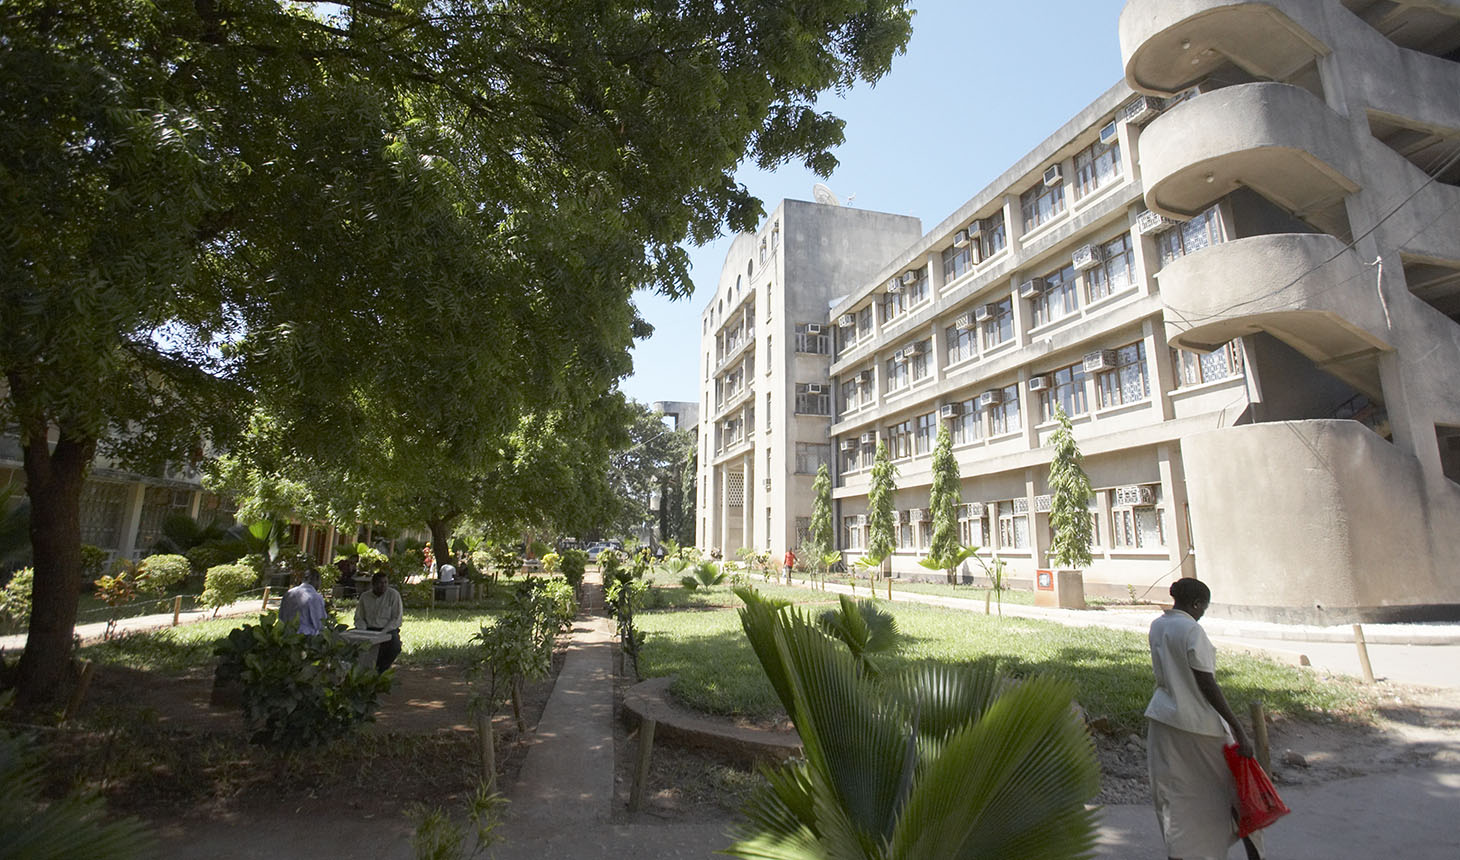 Muhimbili University of Health and Allied Sciences in Dar es Salaam, Tanzania